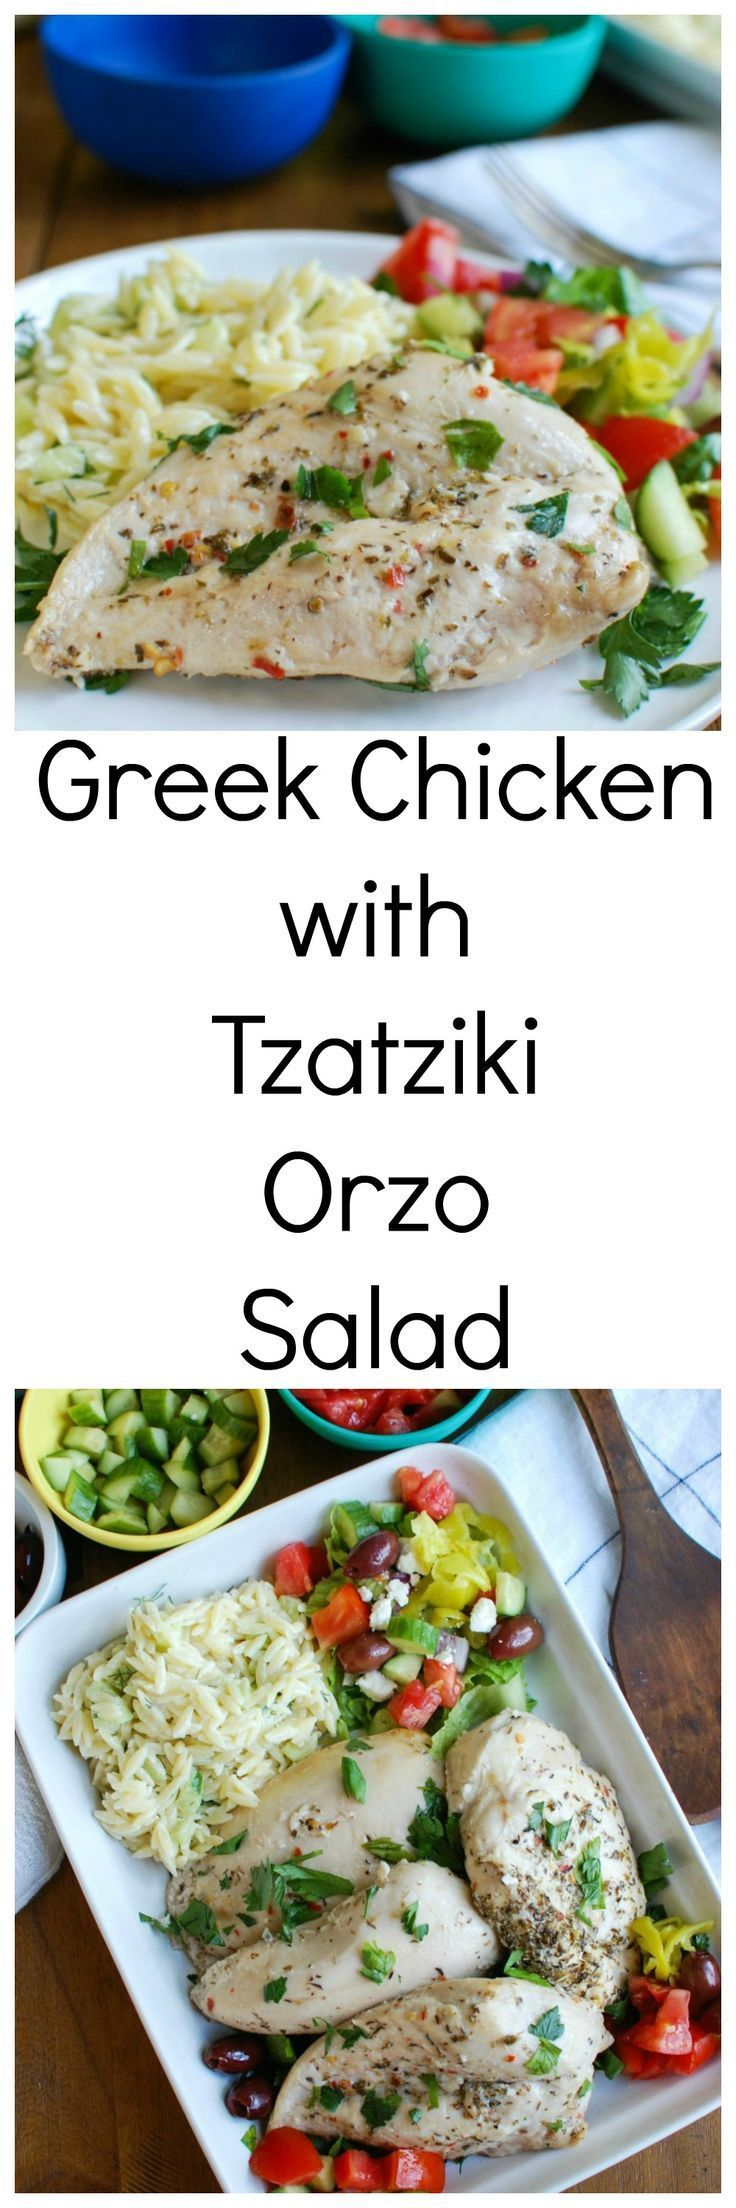 Greek Chicken with Tzatziki Orzo Salad will remind you of your favorite flavors of the Mediterranean.  Chicken breasts are marinated in a Greek marinade and then baked and paired with a tzatziki orzo salad and garnished with diced tomatoes, cucumbers, feta cheese and kalamata olives. // A Cedar Spoon